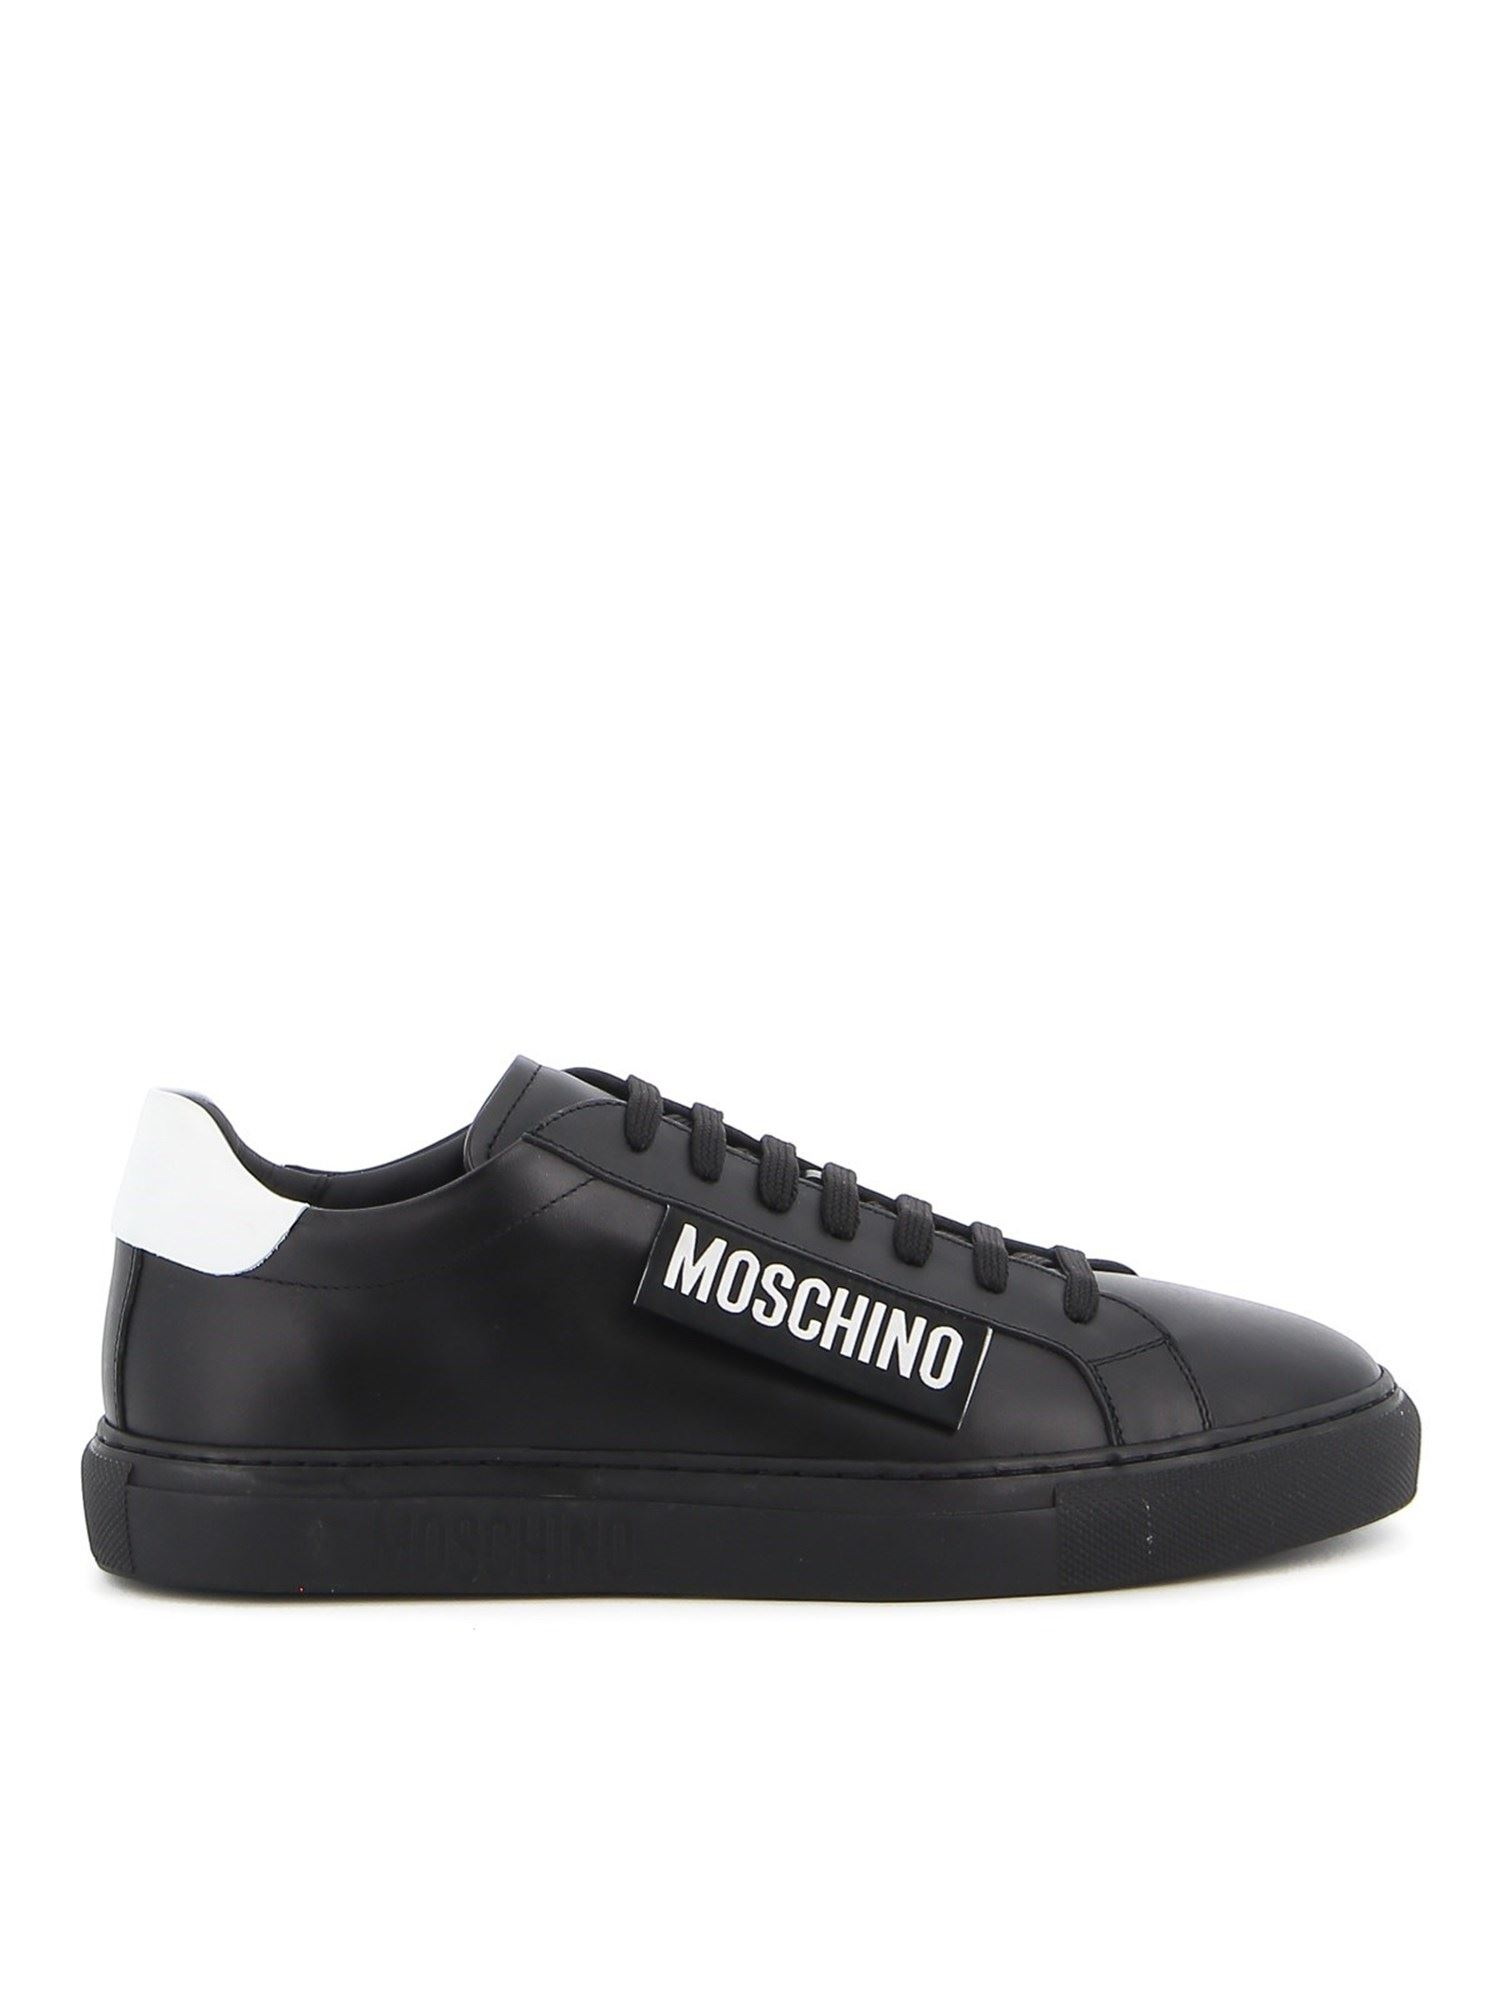 Moschino Leathers LABEL SMOOTH LEATHER SNEAKERS IN BLACK